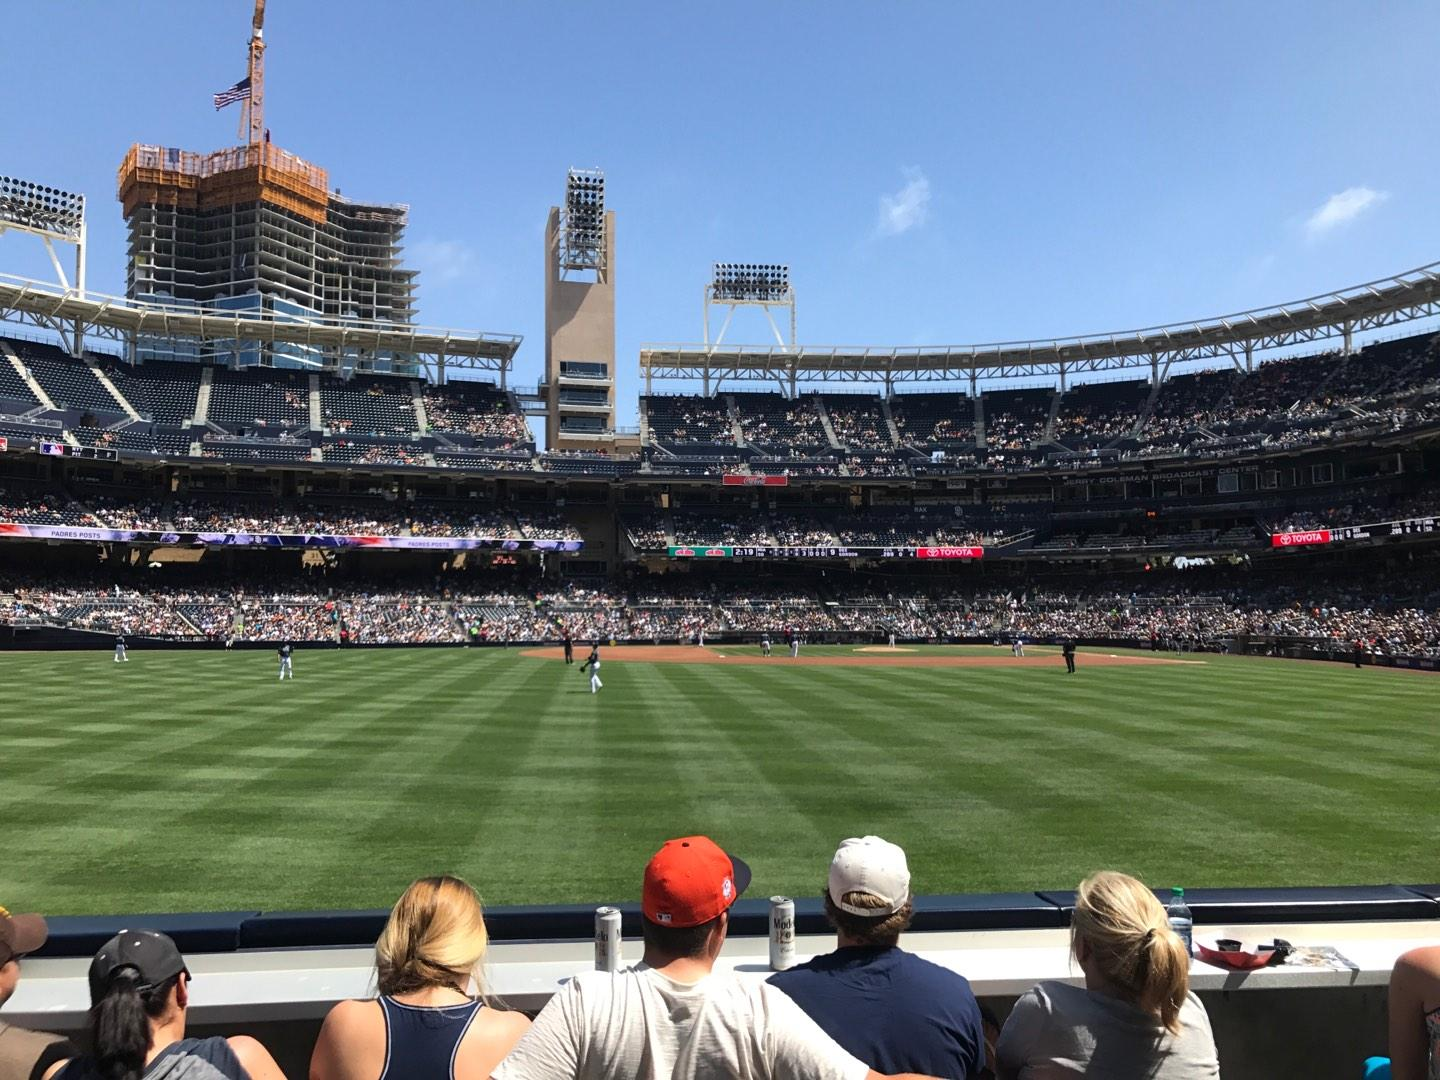 PETCO Park Section 130 Row 2 Seat 10